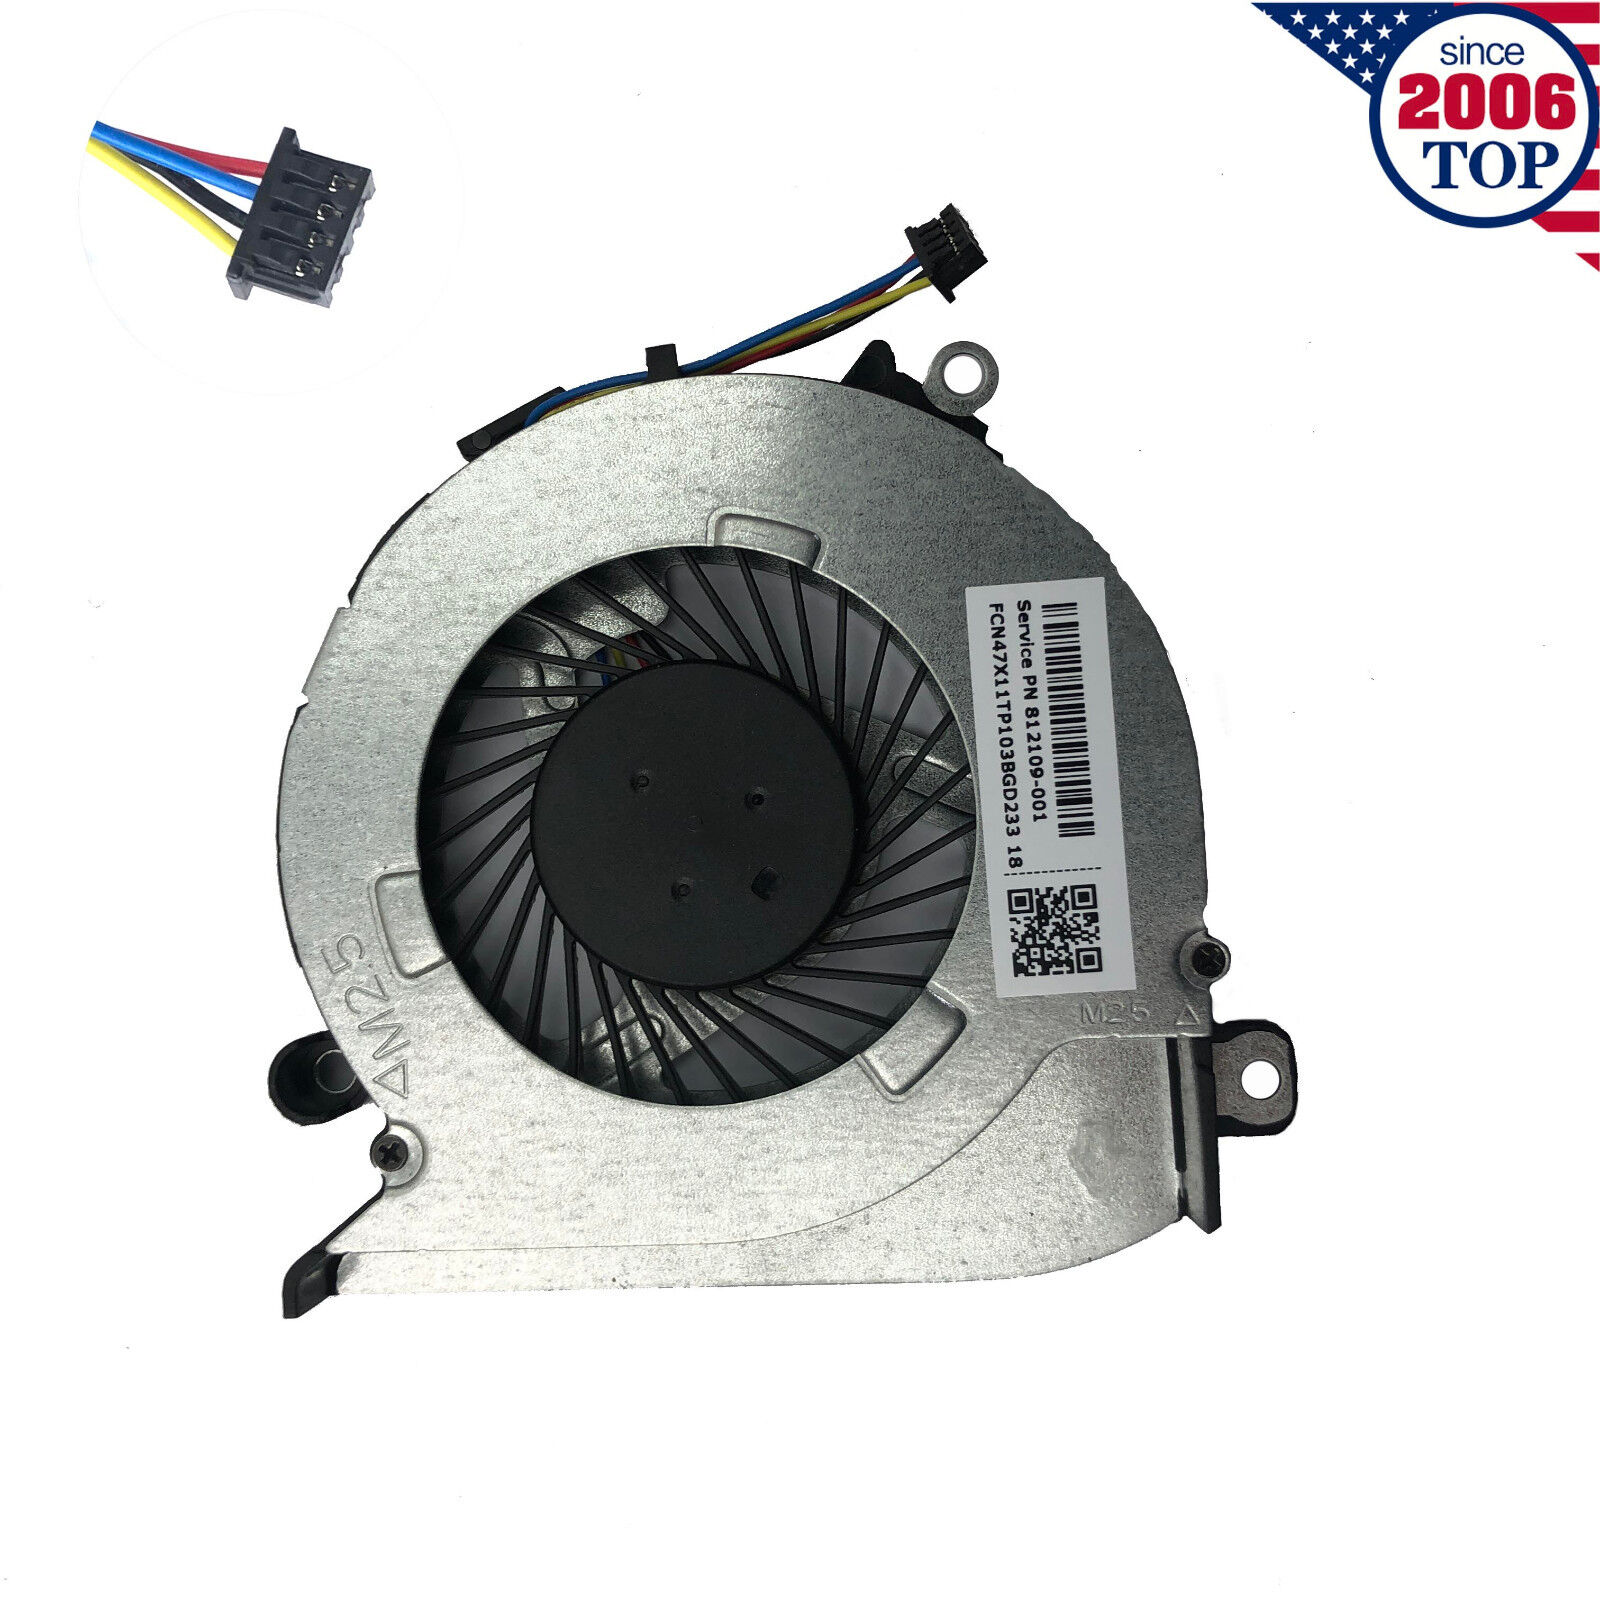 HP 17-G Genuine Laptop CPU Fan 812109-001 TESTED